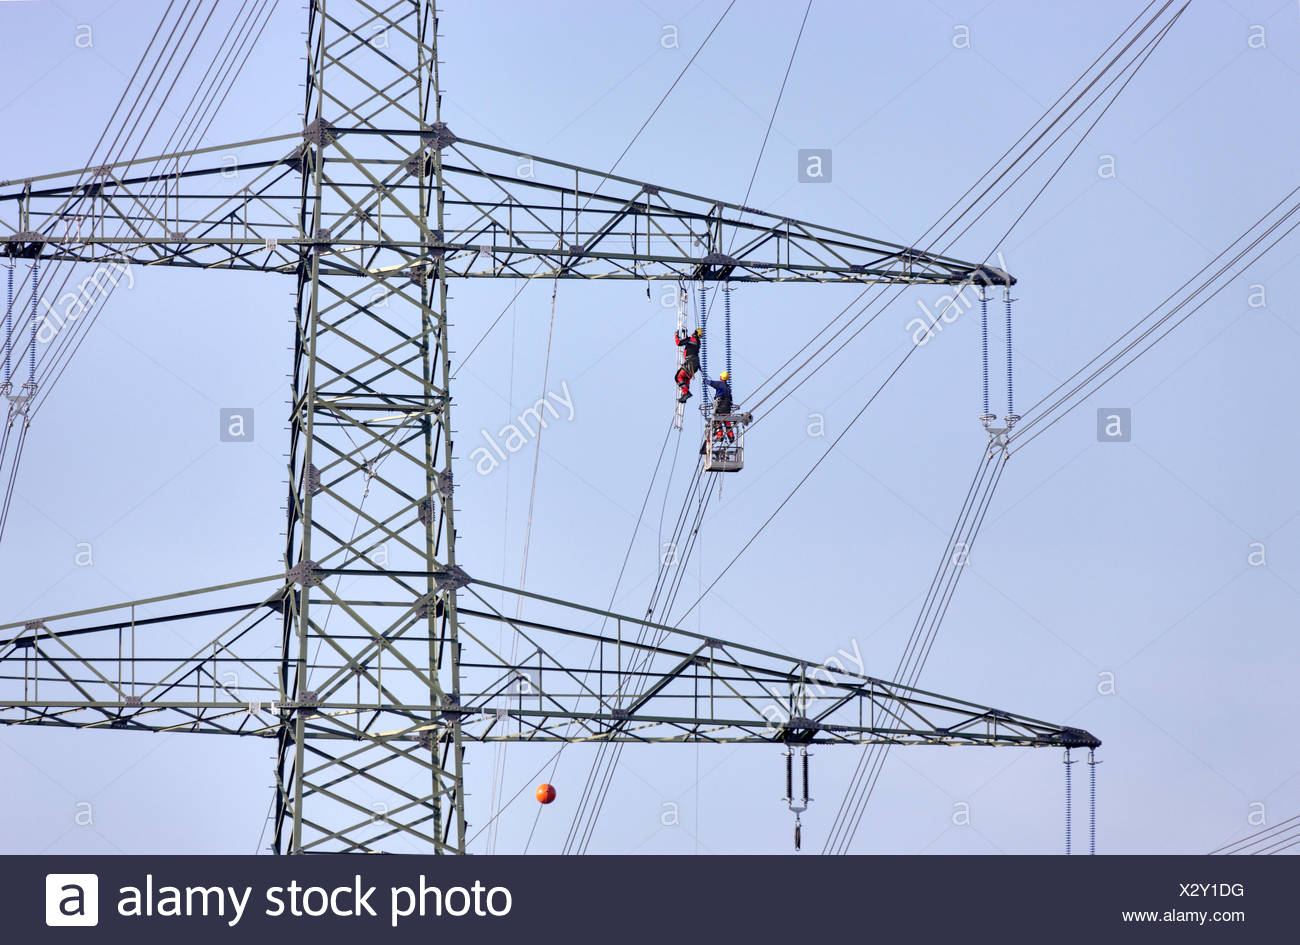 High-voltage pole, power line wire installation, man climbing to side arm, other man supporting him from a gondola, Thuringian Forest - Stock Image